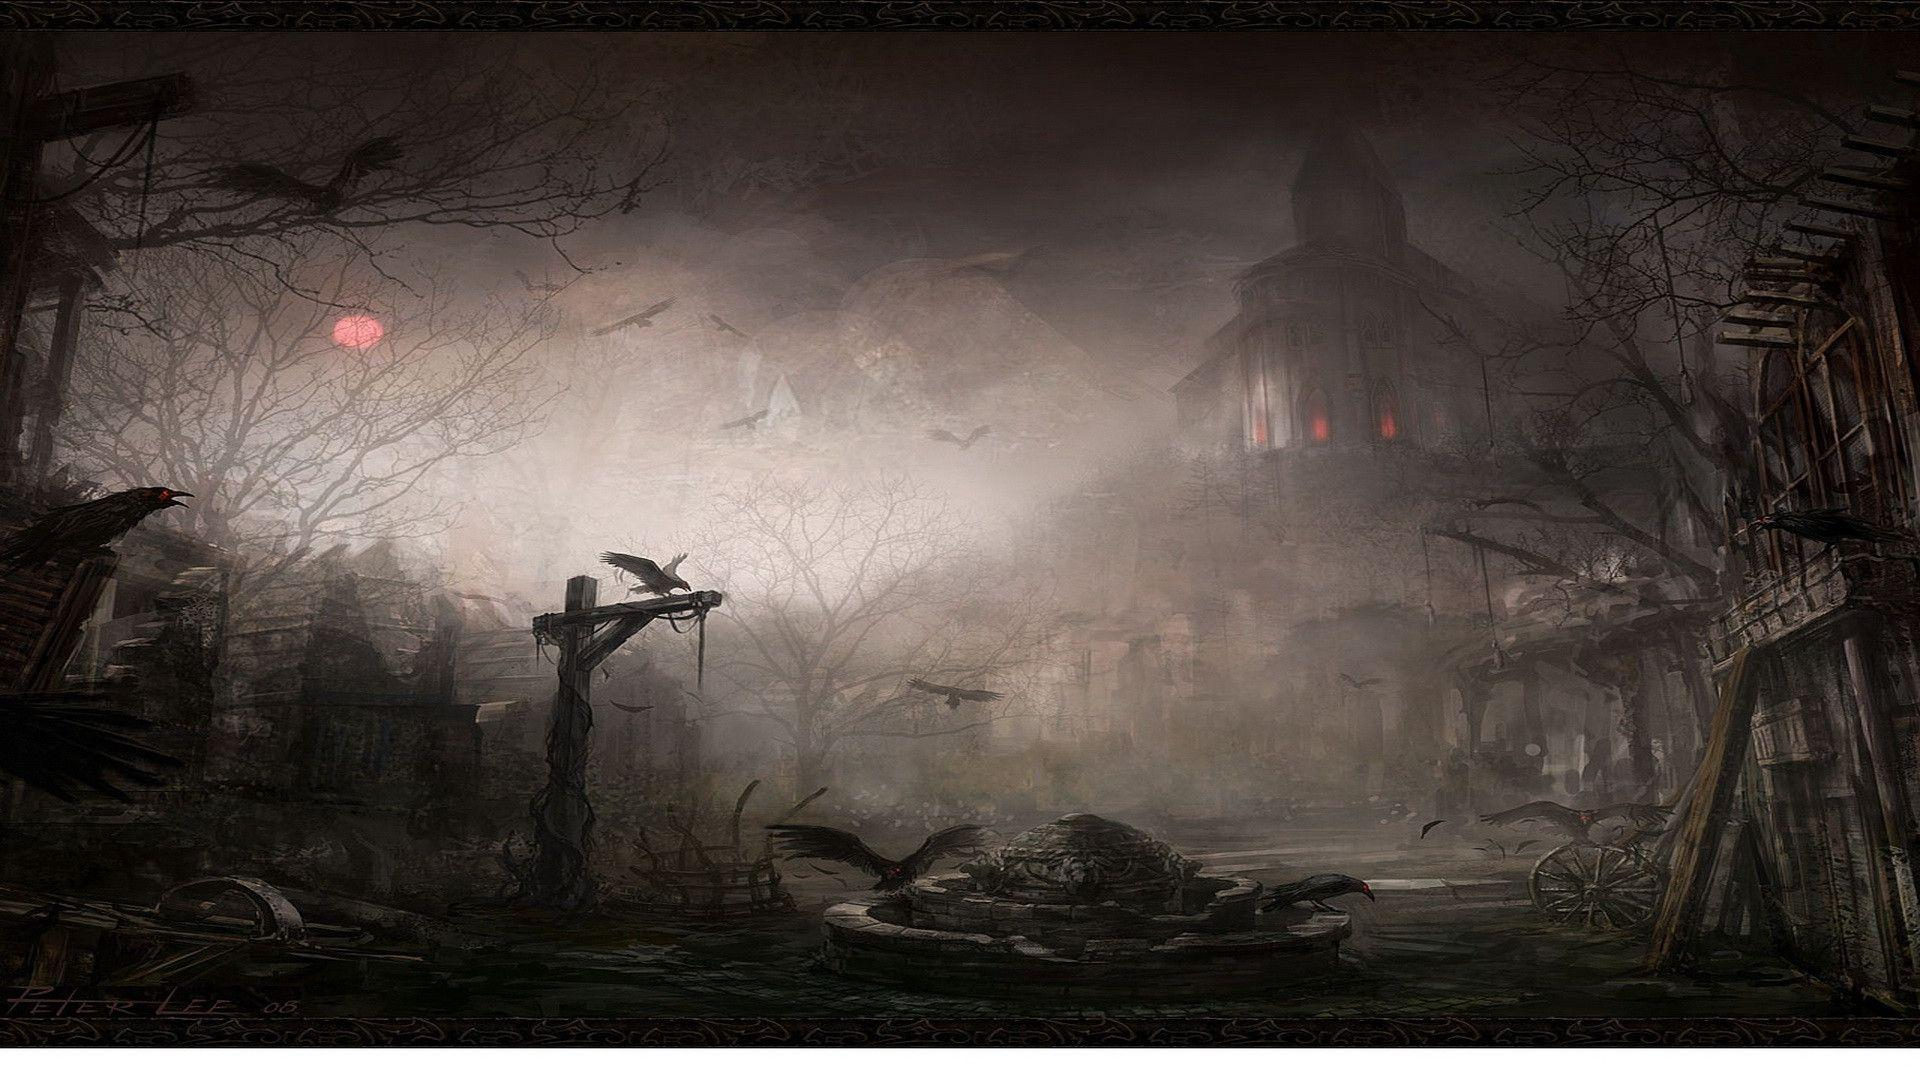 Scary Image Gallery Presentation Backgrounds for Powerpoint ...